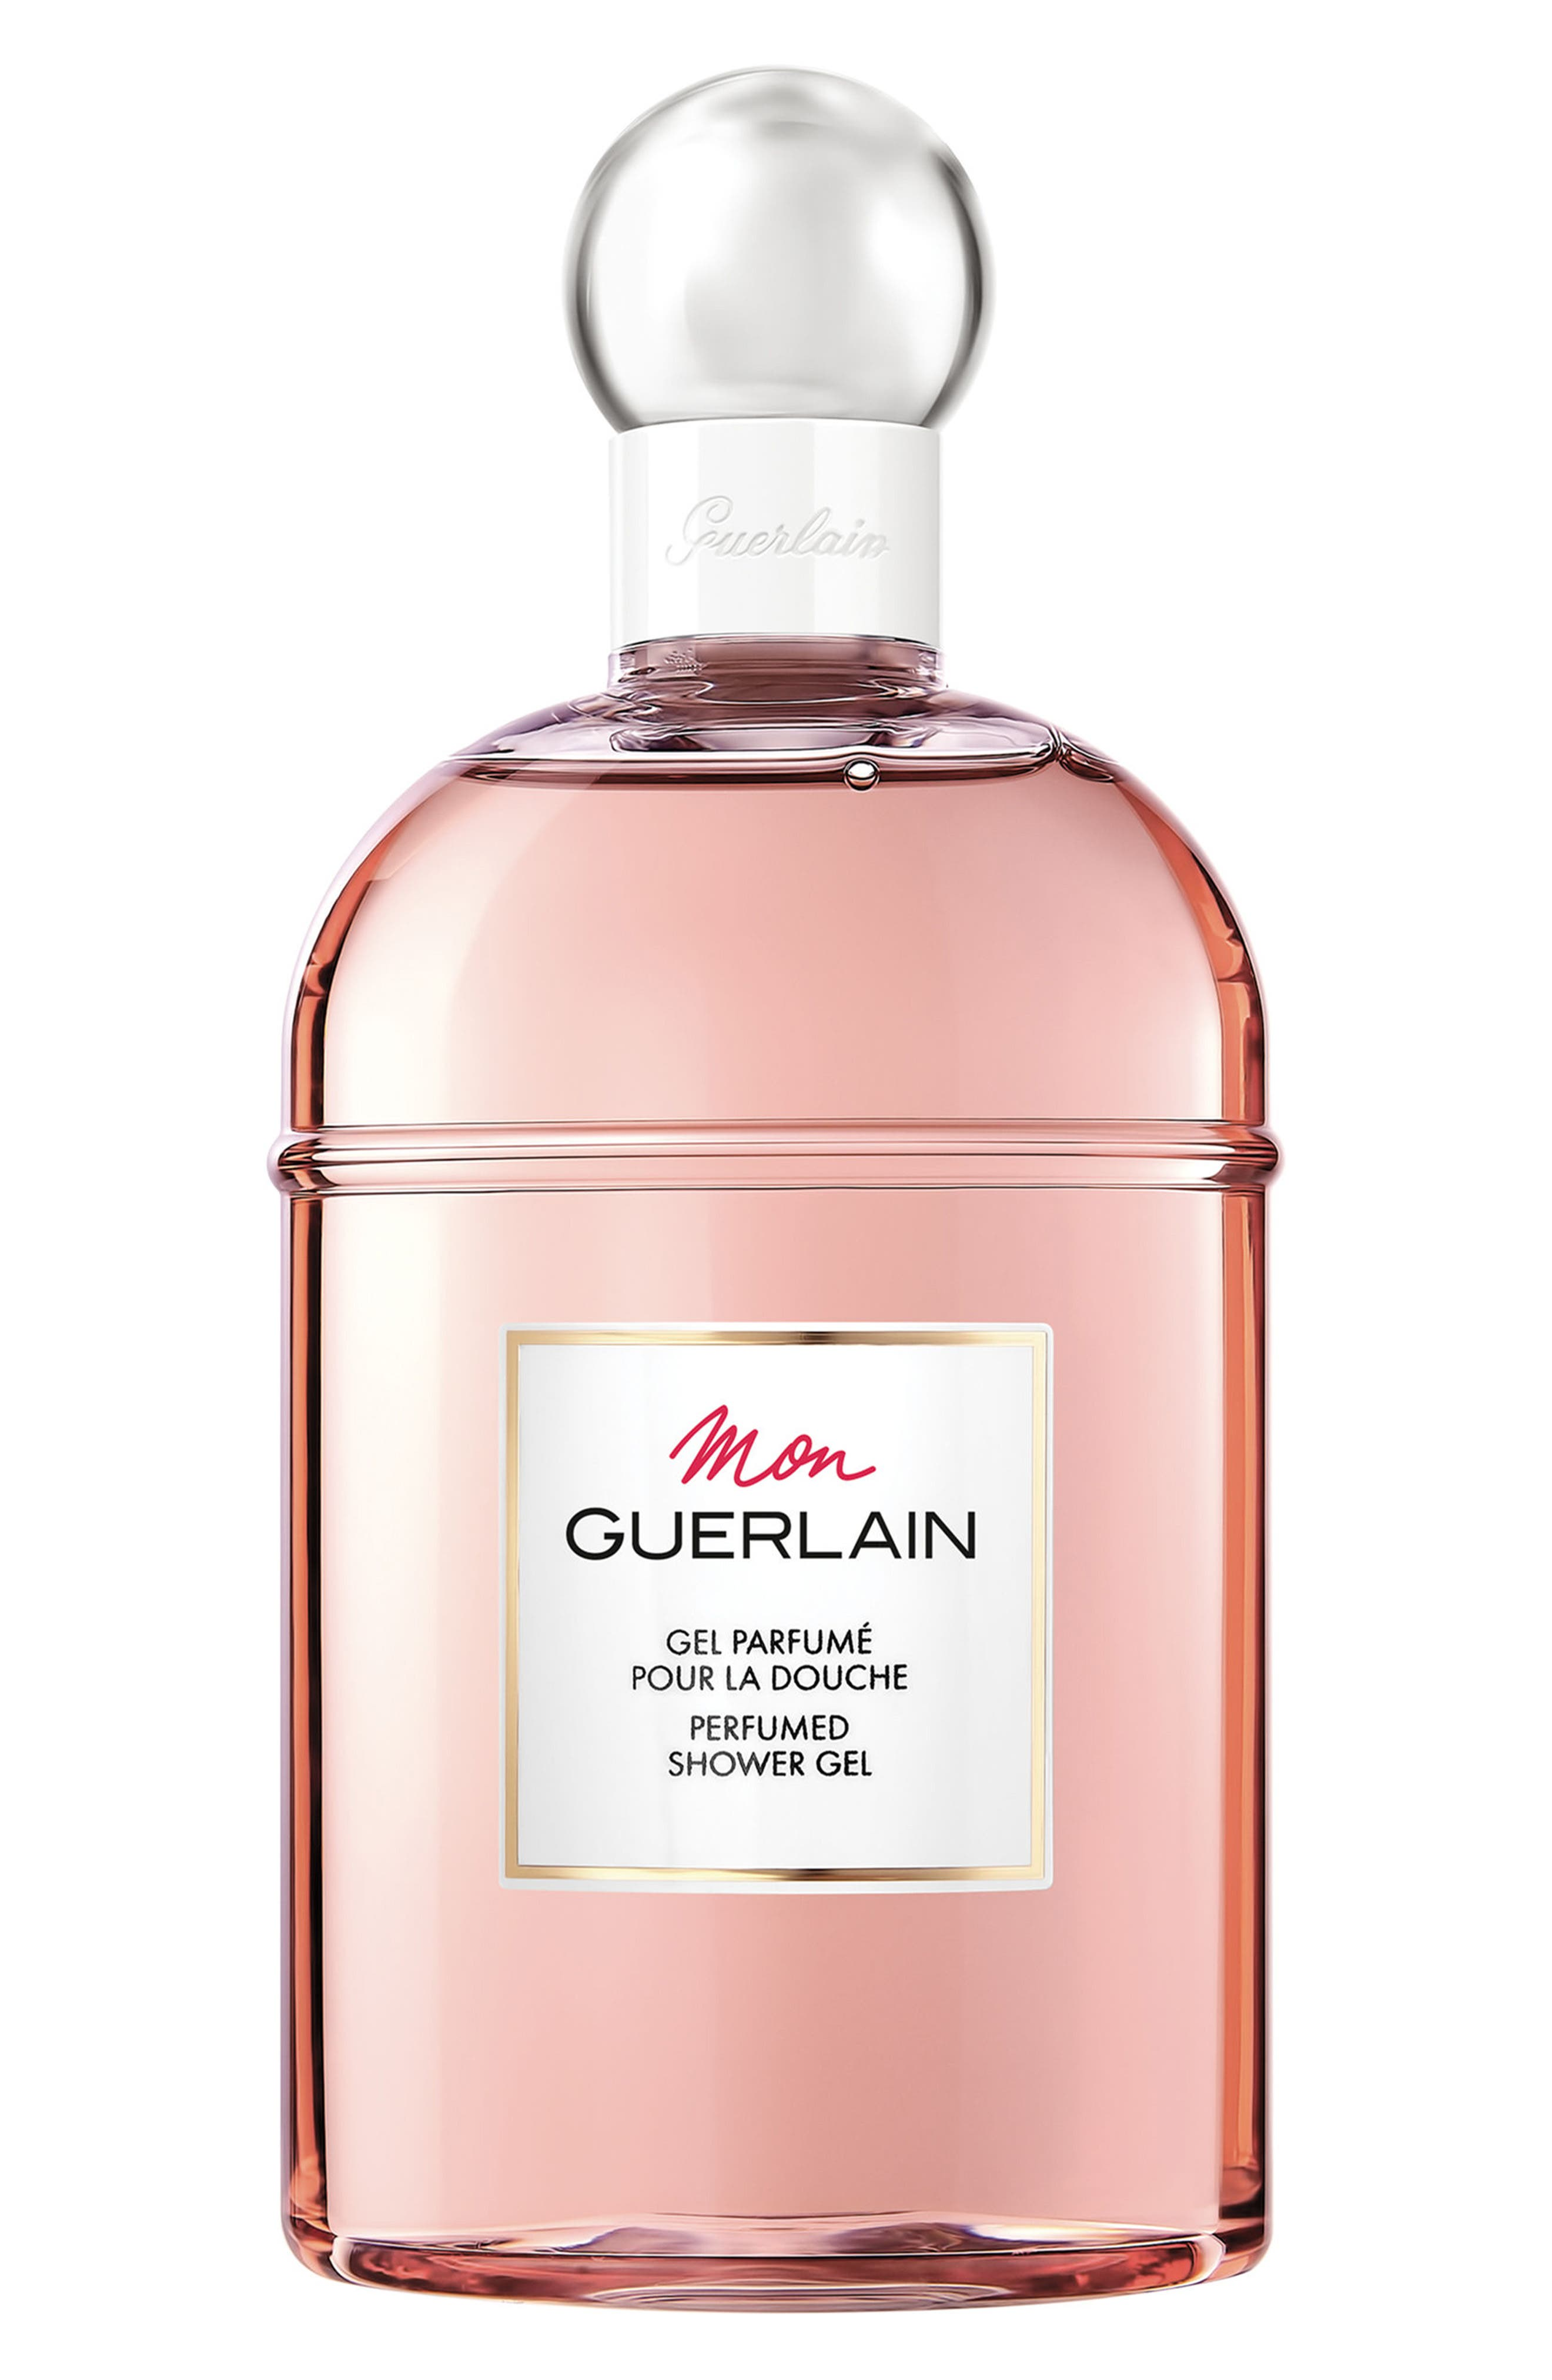 Mon Guerlain Perfumed Shower Gel,                             Main thumbnail 1, color,                             No Color